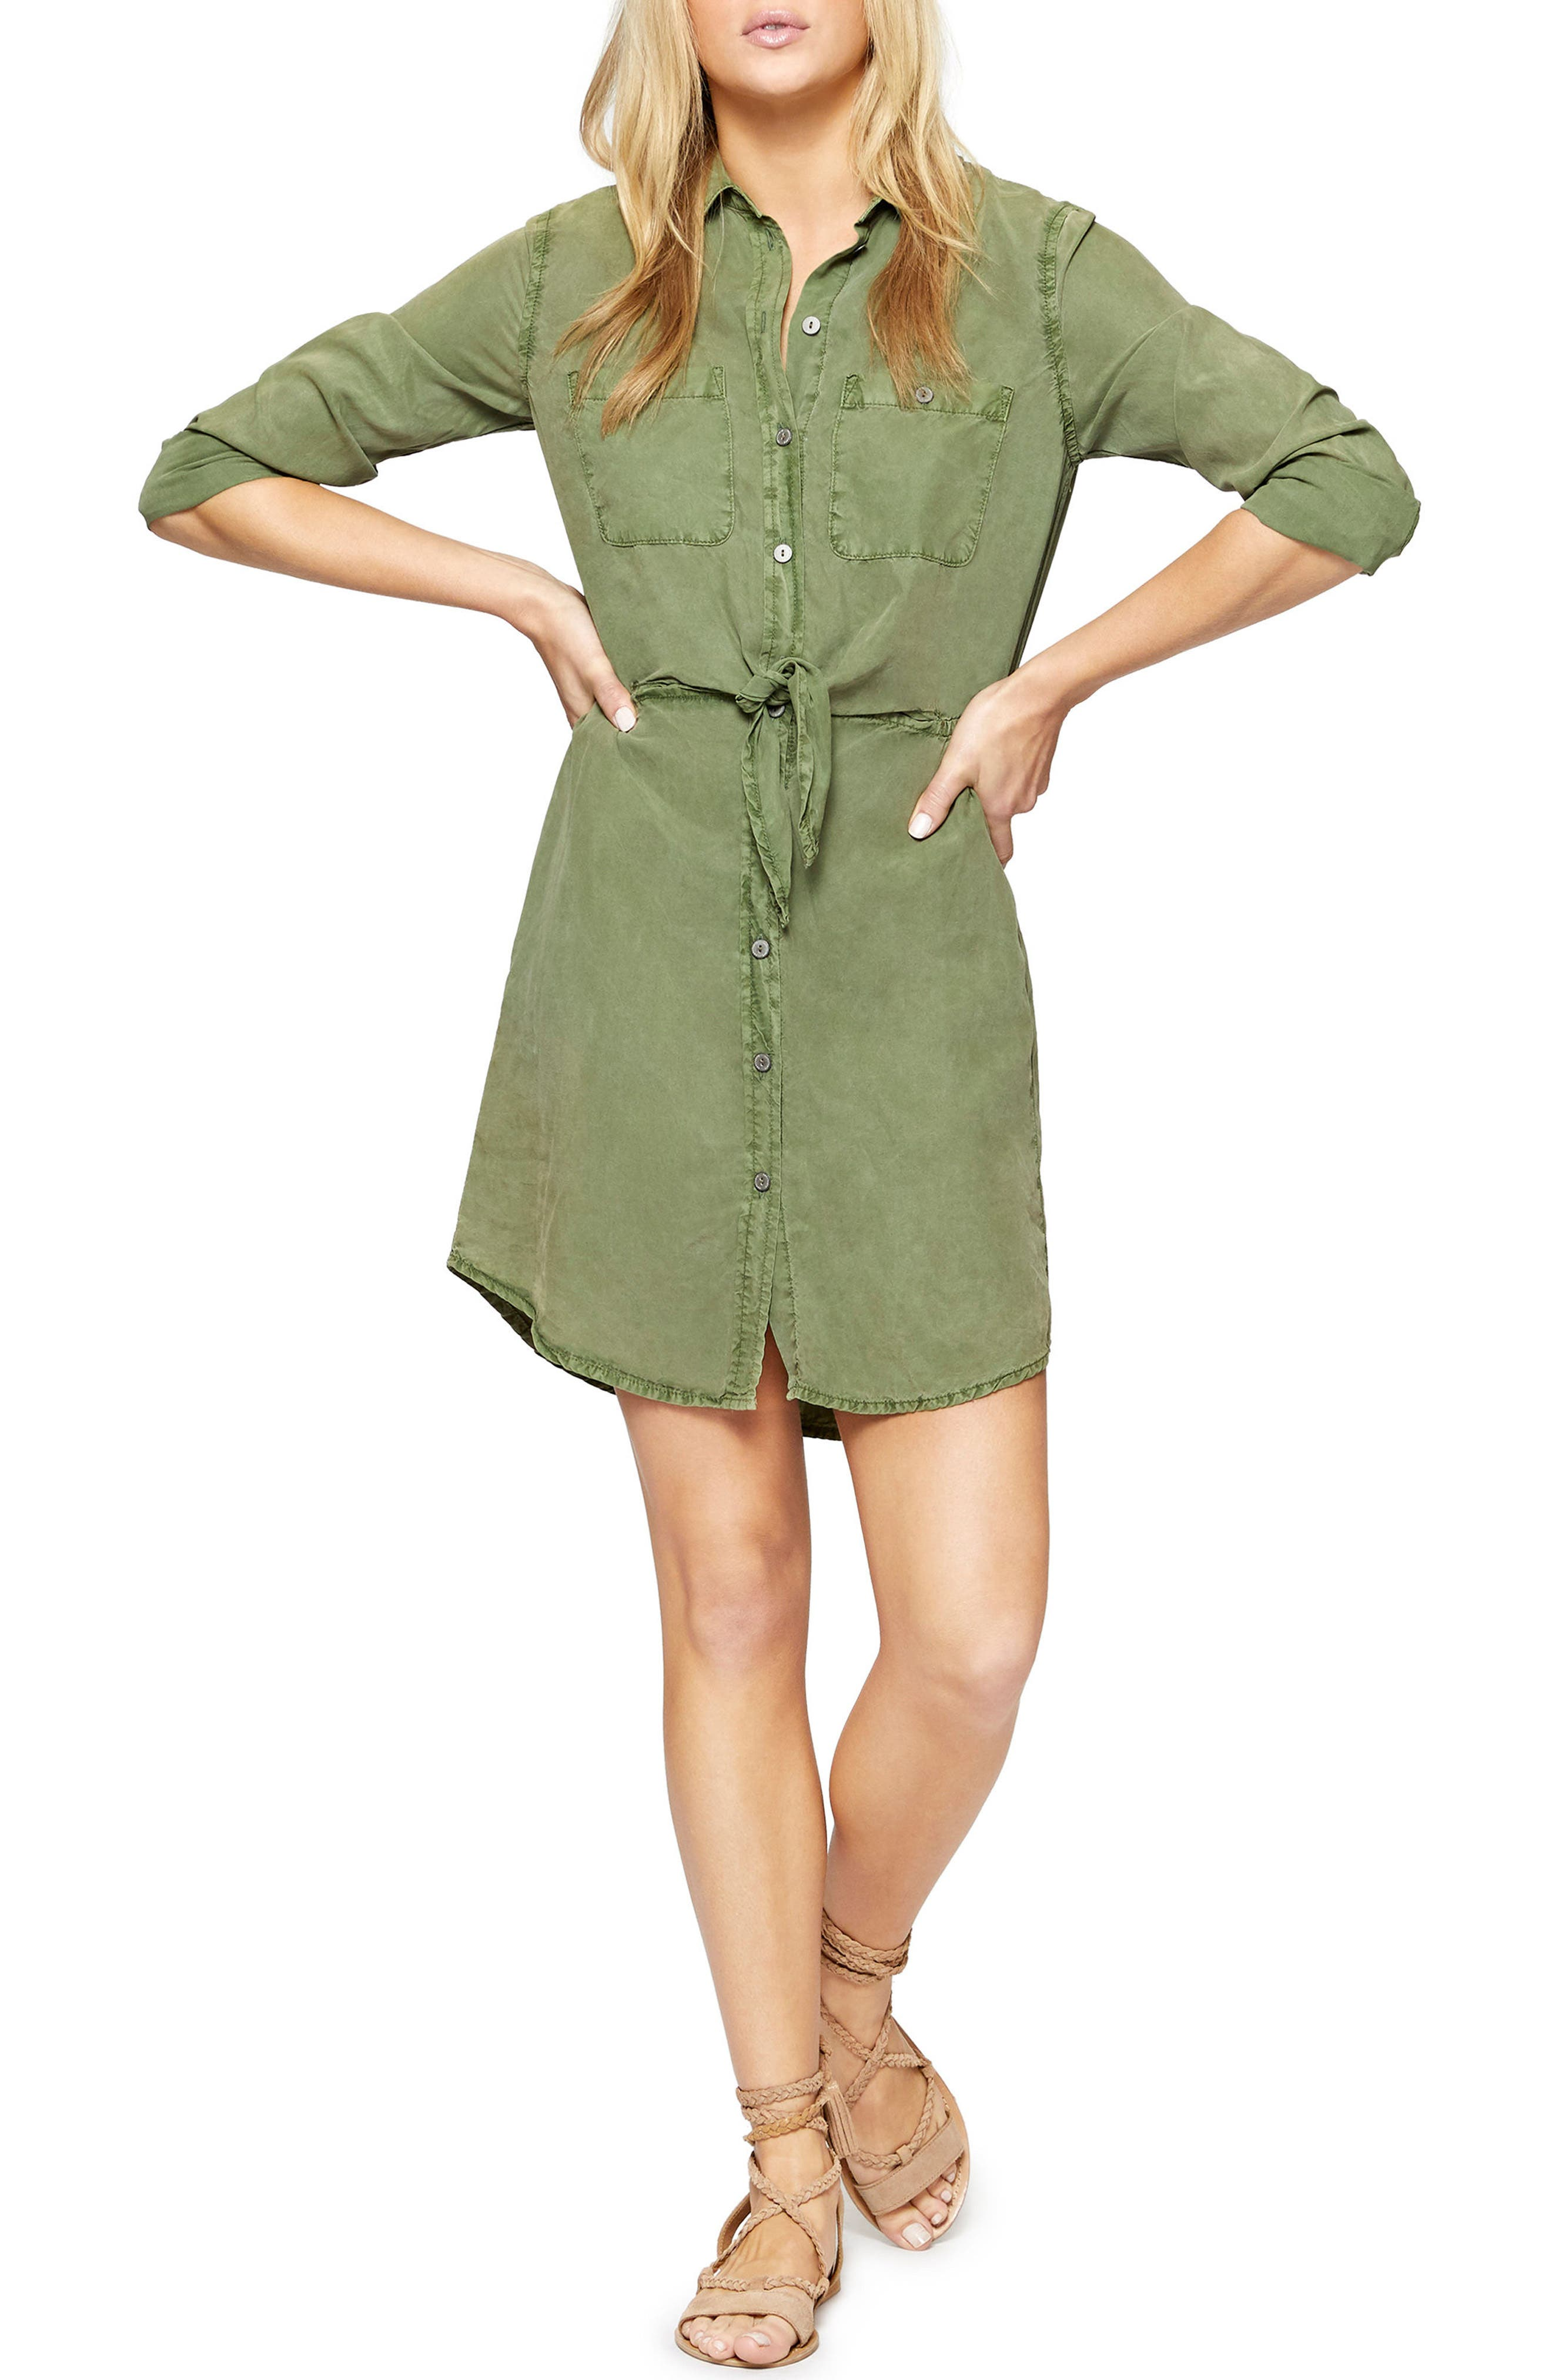 Forget Me Knot Shirtdress,                             Main thumbnail 1, color,                             Cadet